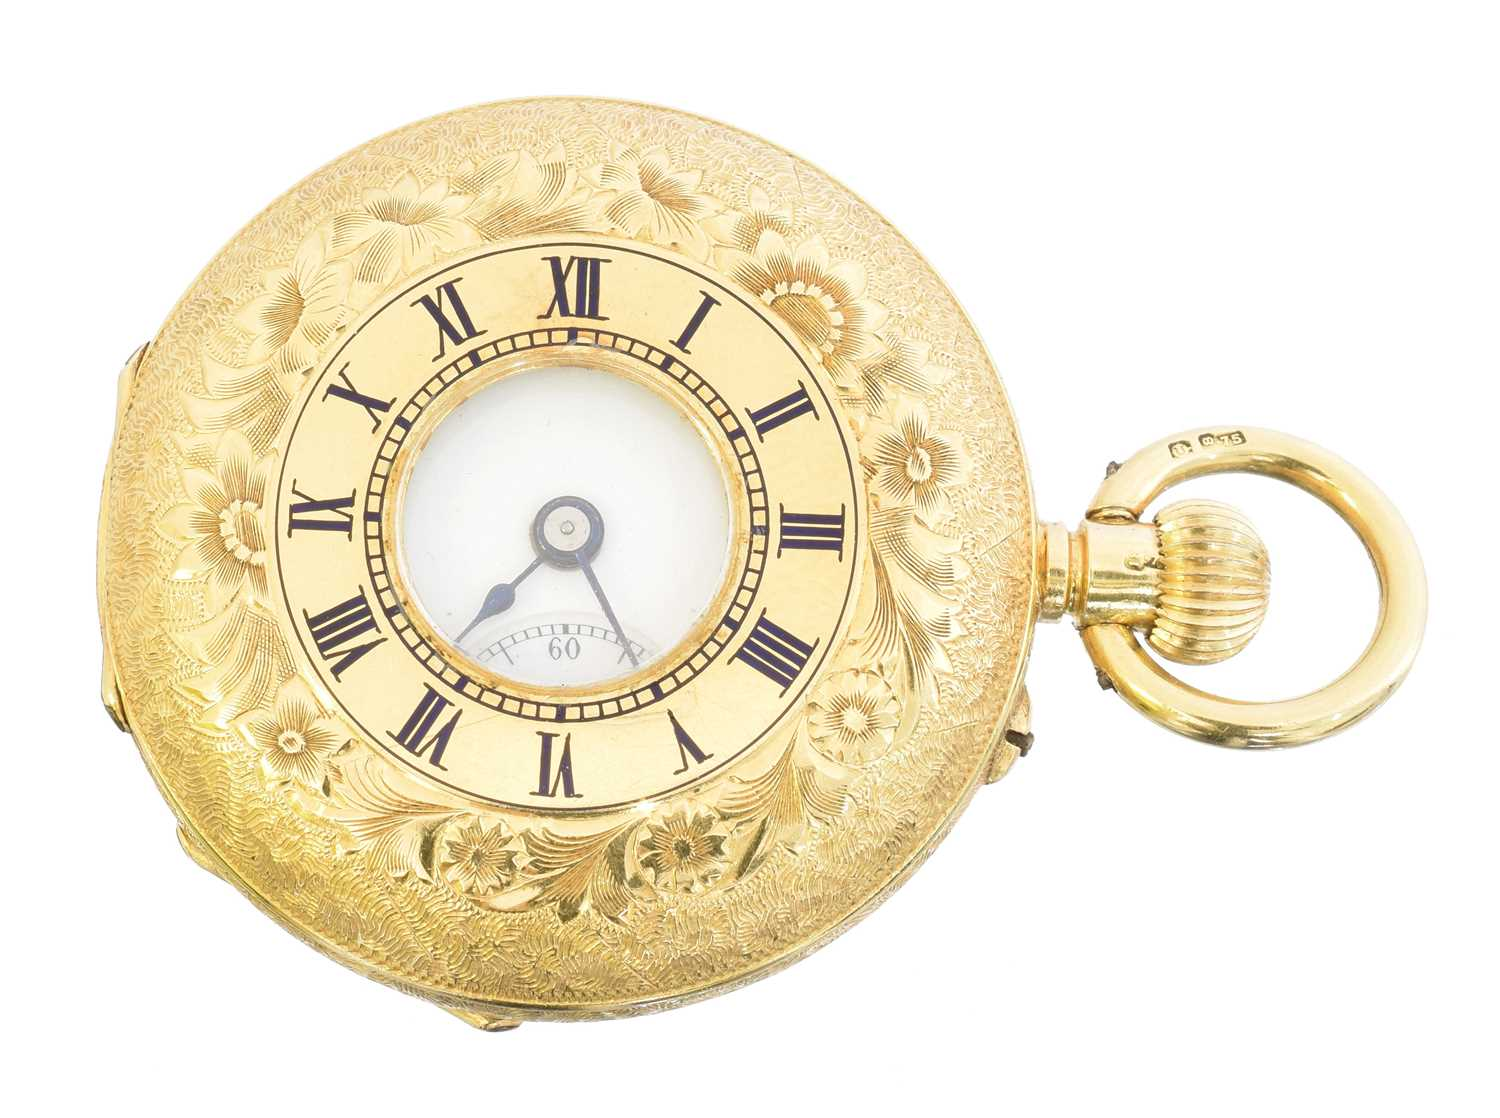 Lot An early 20th century 18ct gold half hunter fob watch